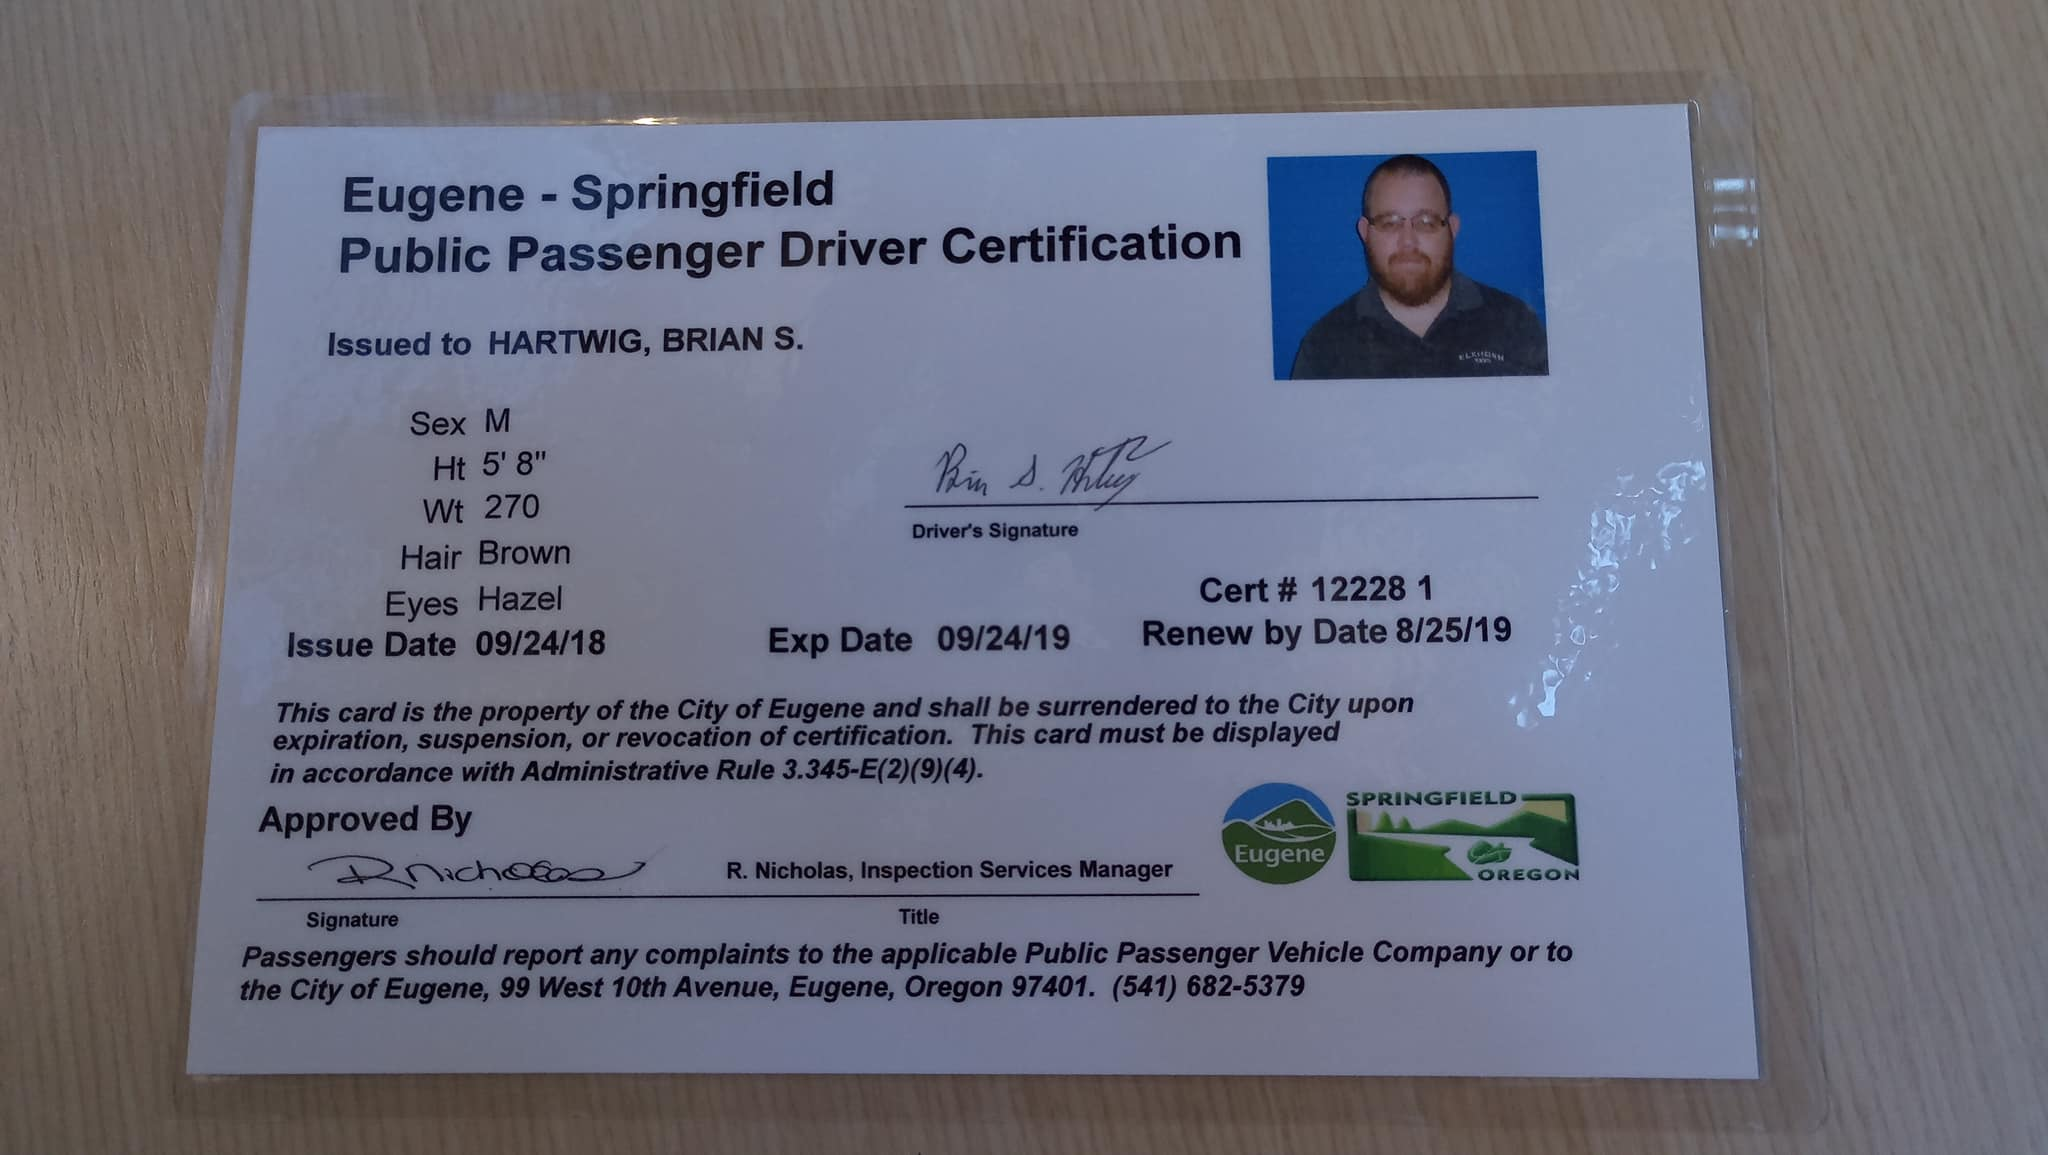 Brian Hartwig's Drivers Certificate